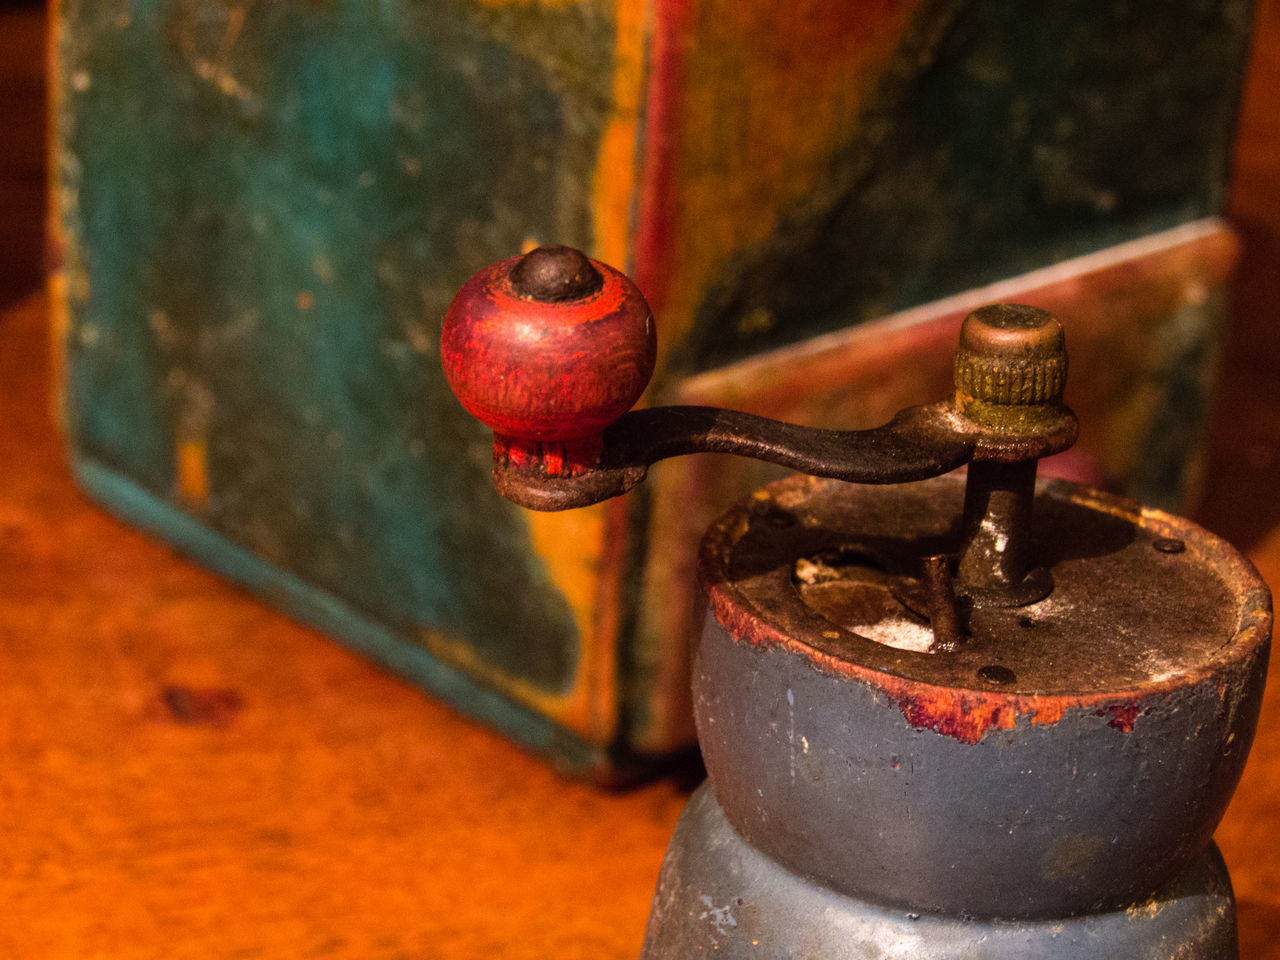 Close-Up Of Coffee Grinder On Table